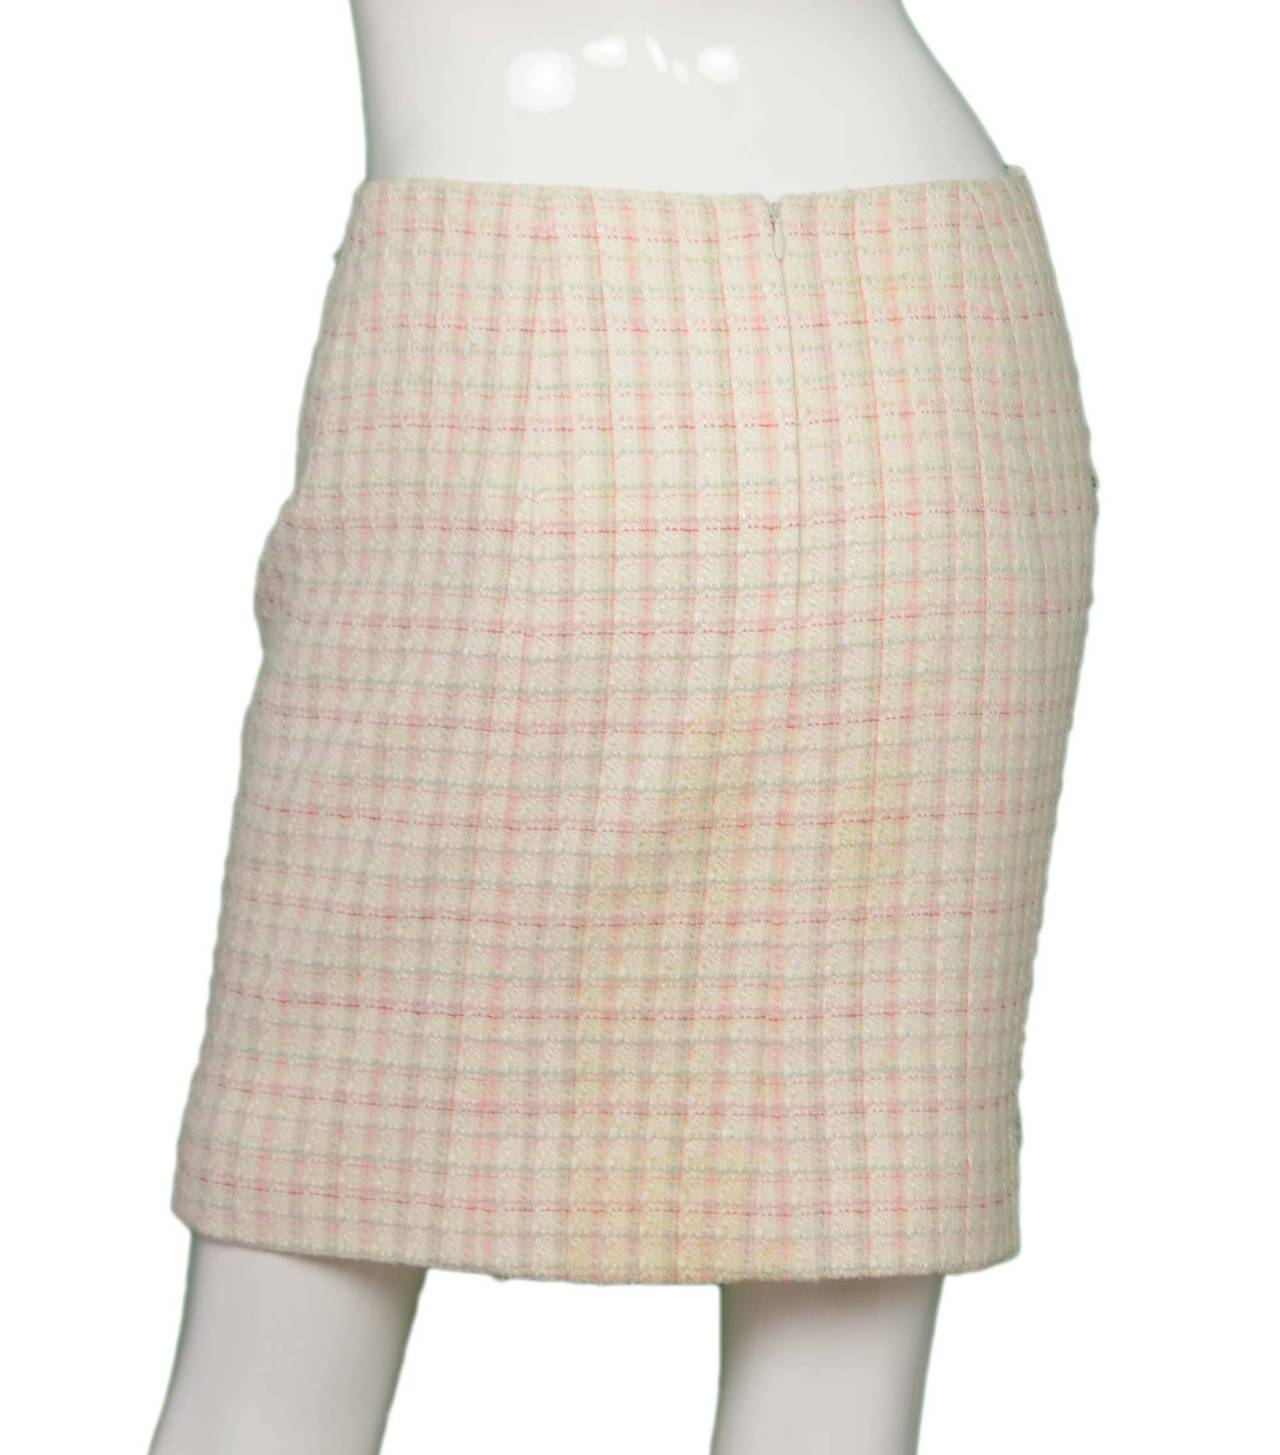 chanel white tweed a line skirt sz 36 for sale at 1stdibs